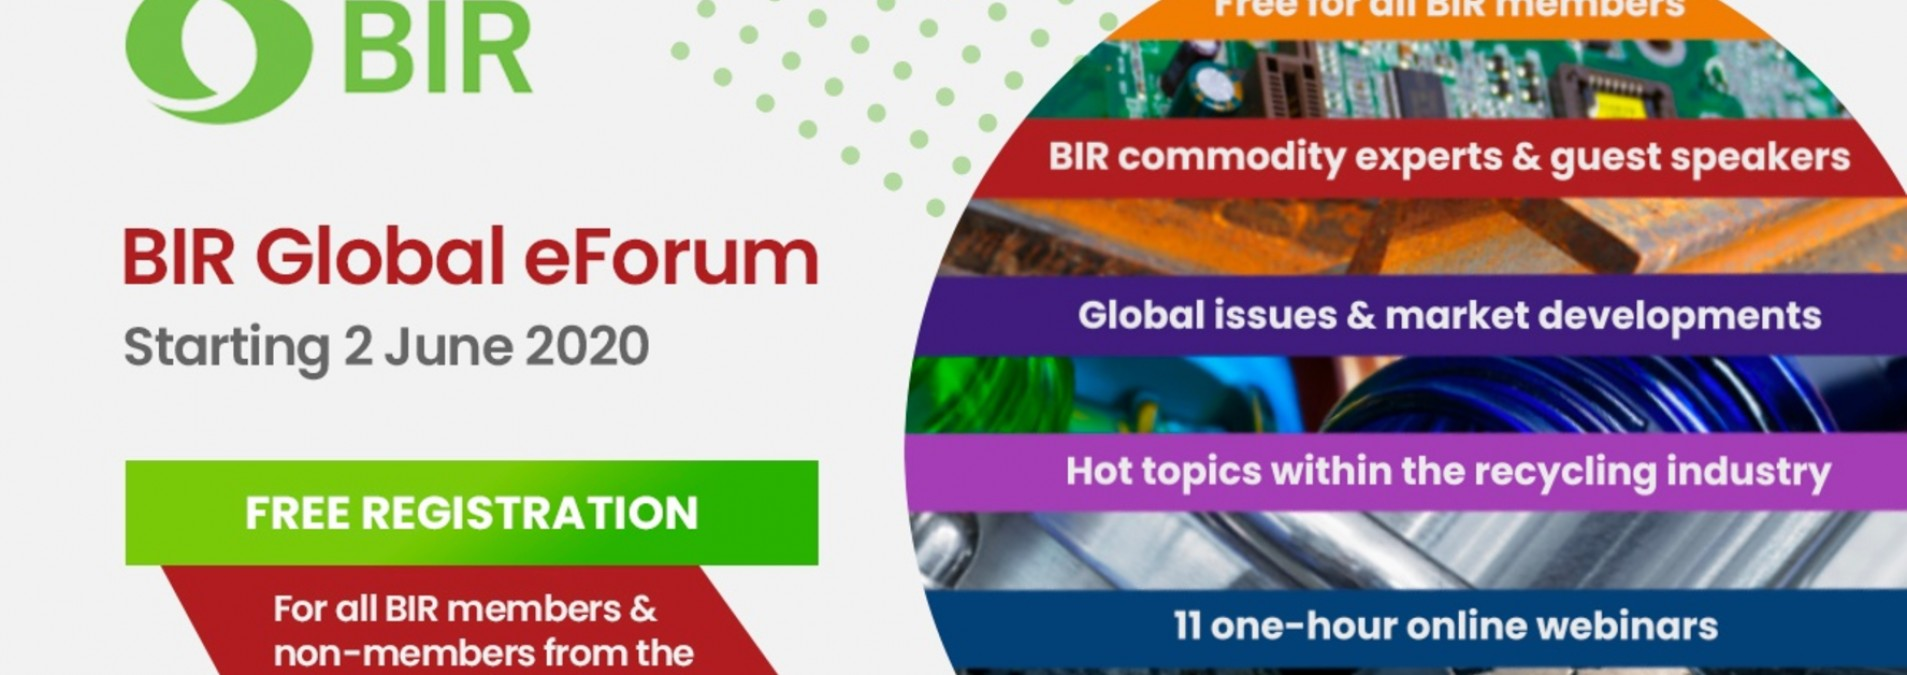 BIR Global eForum Image 1